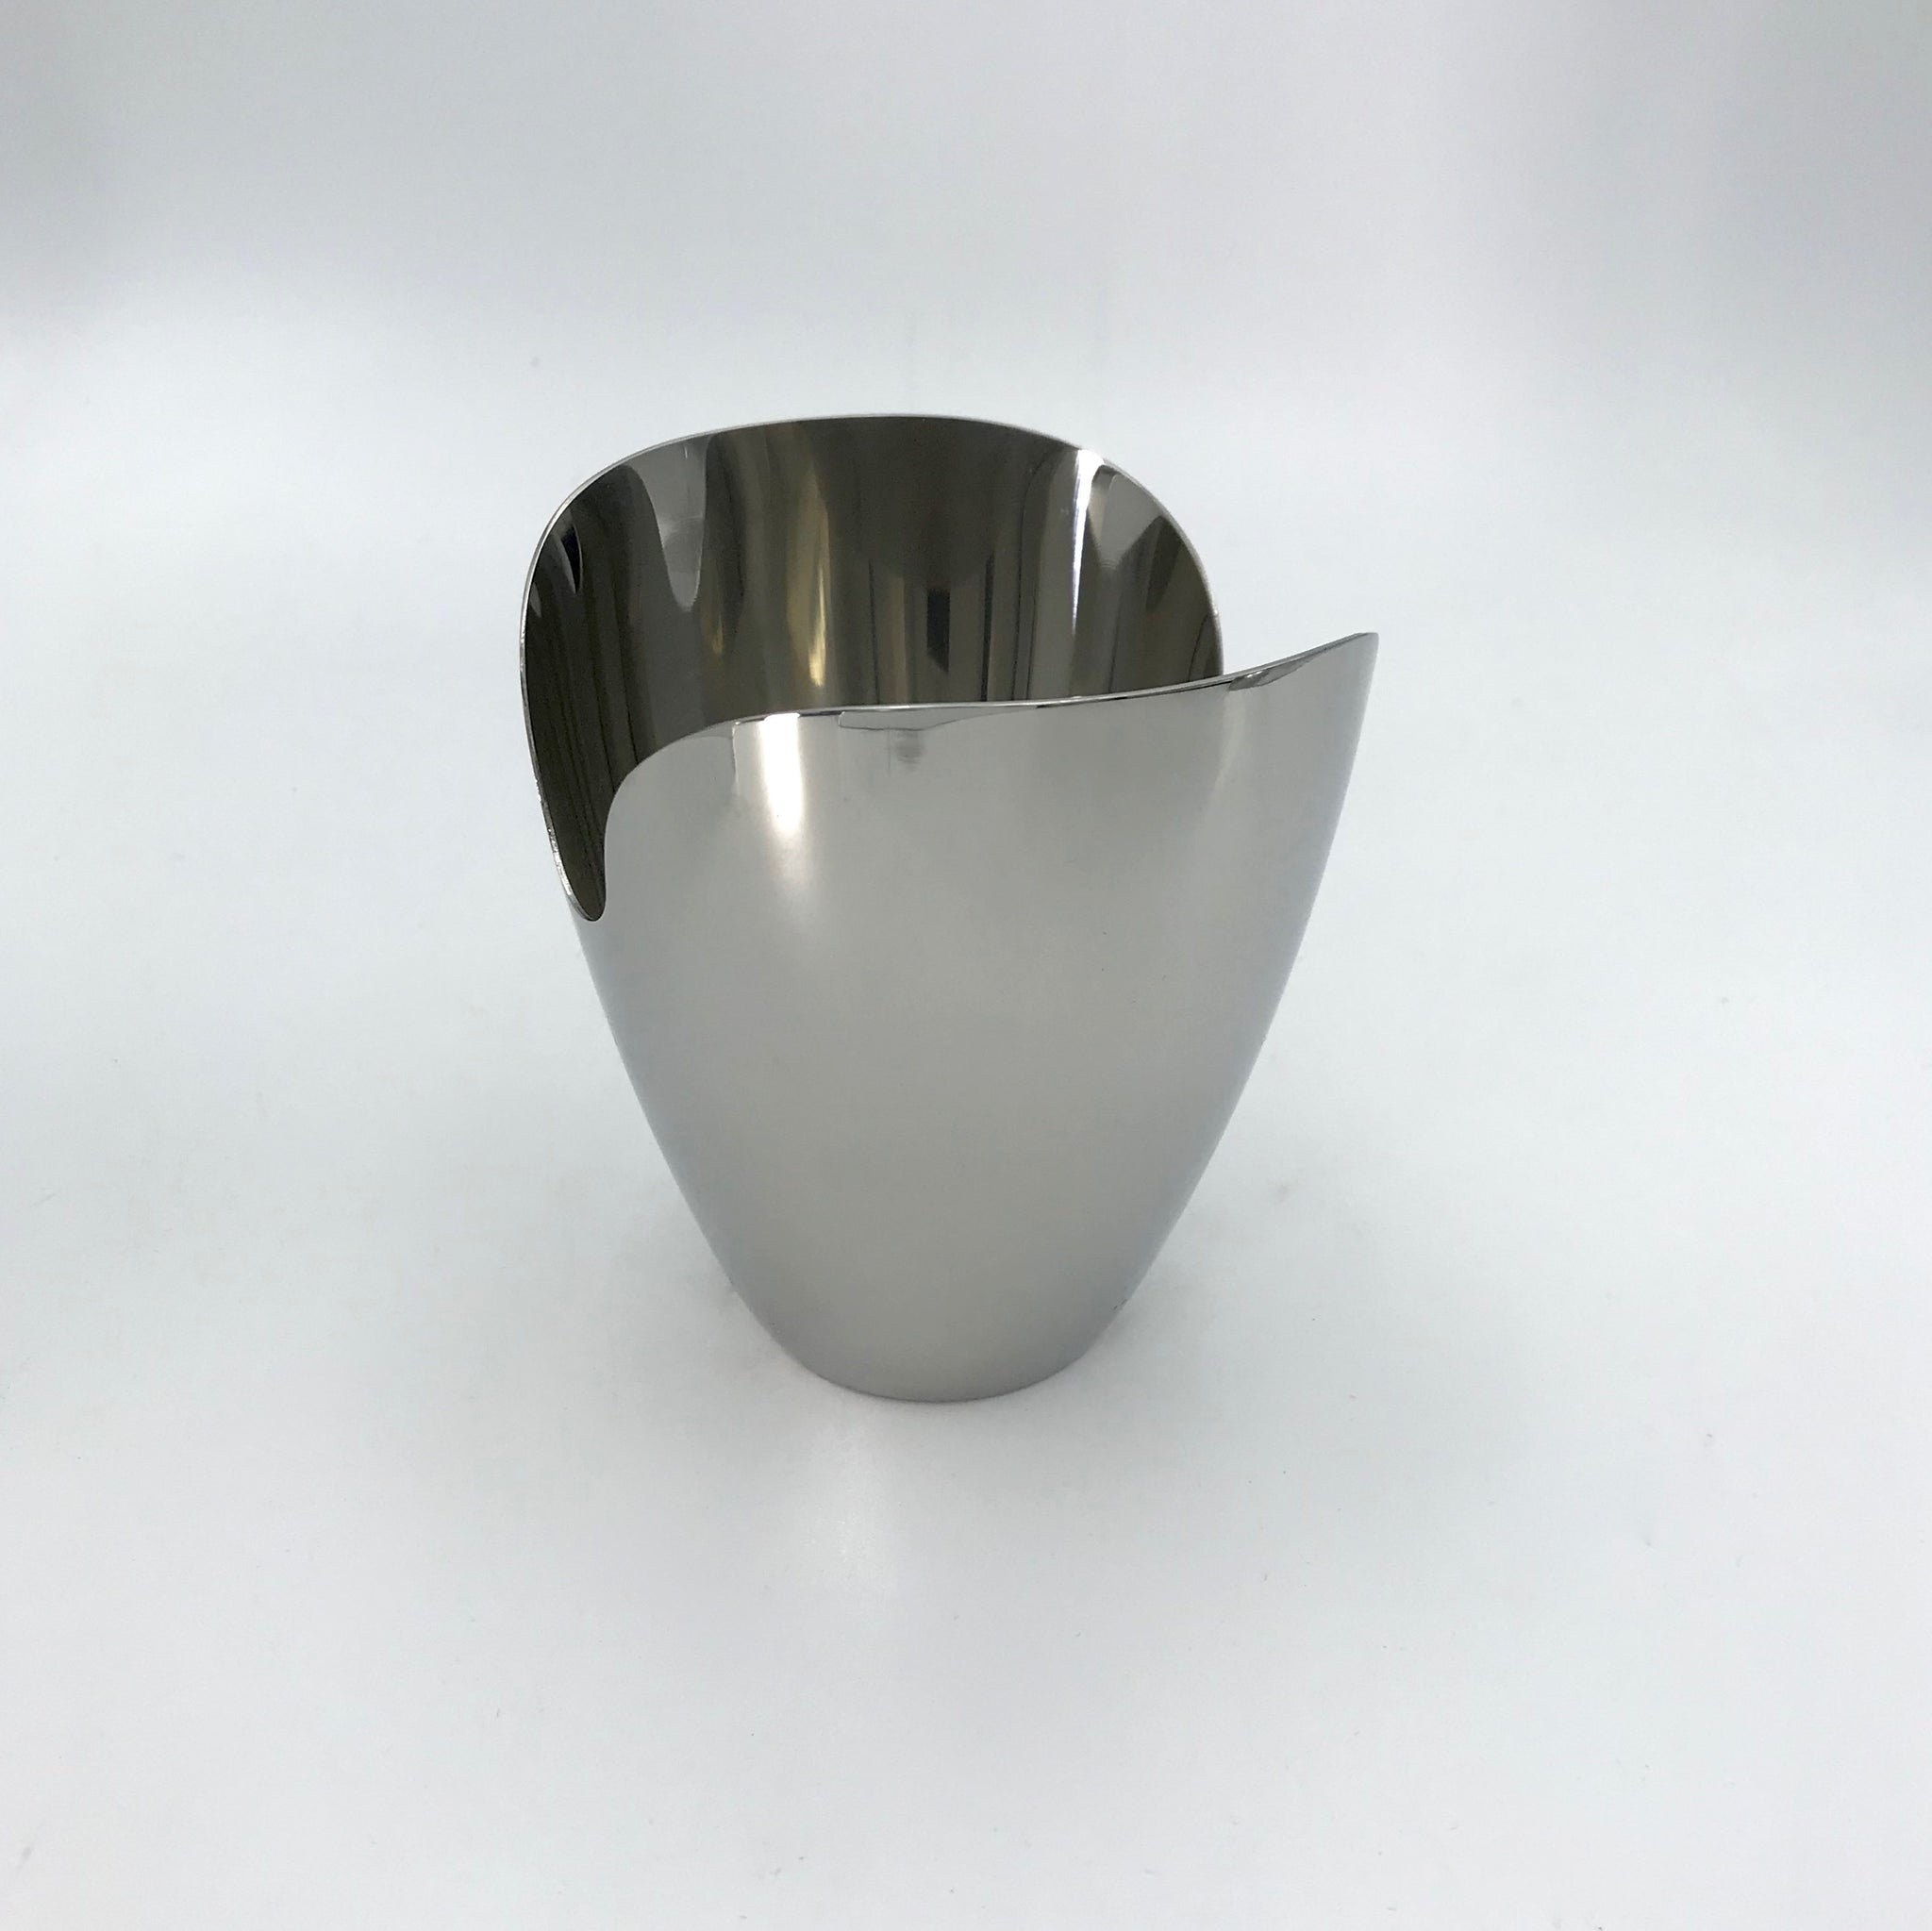 Small Stainless Steel Snack Bowl